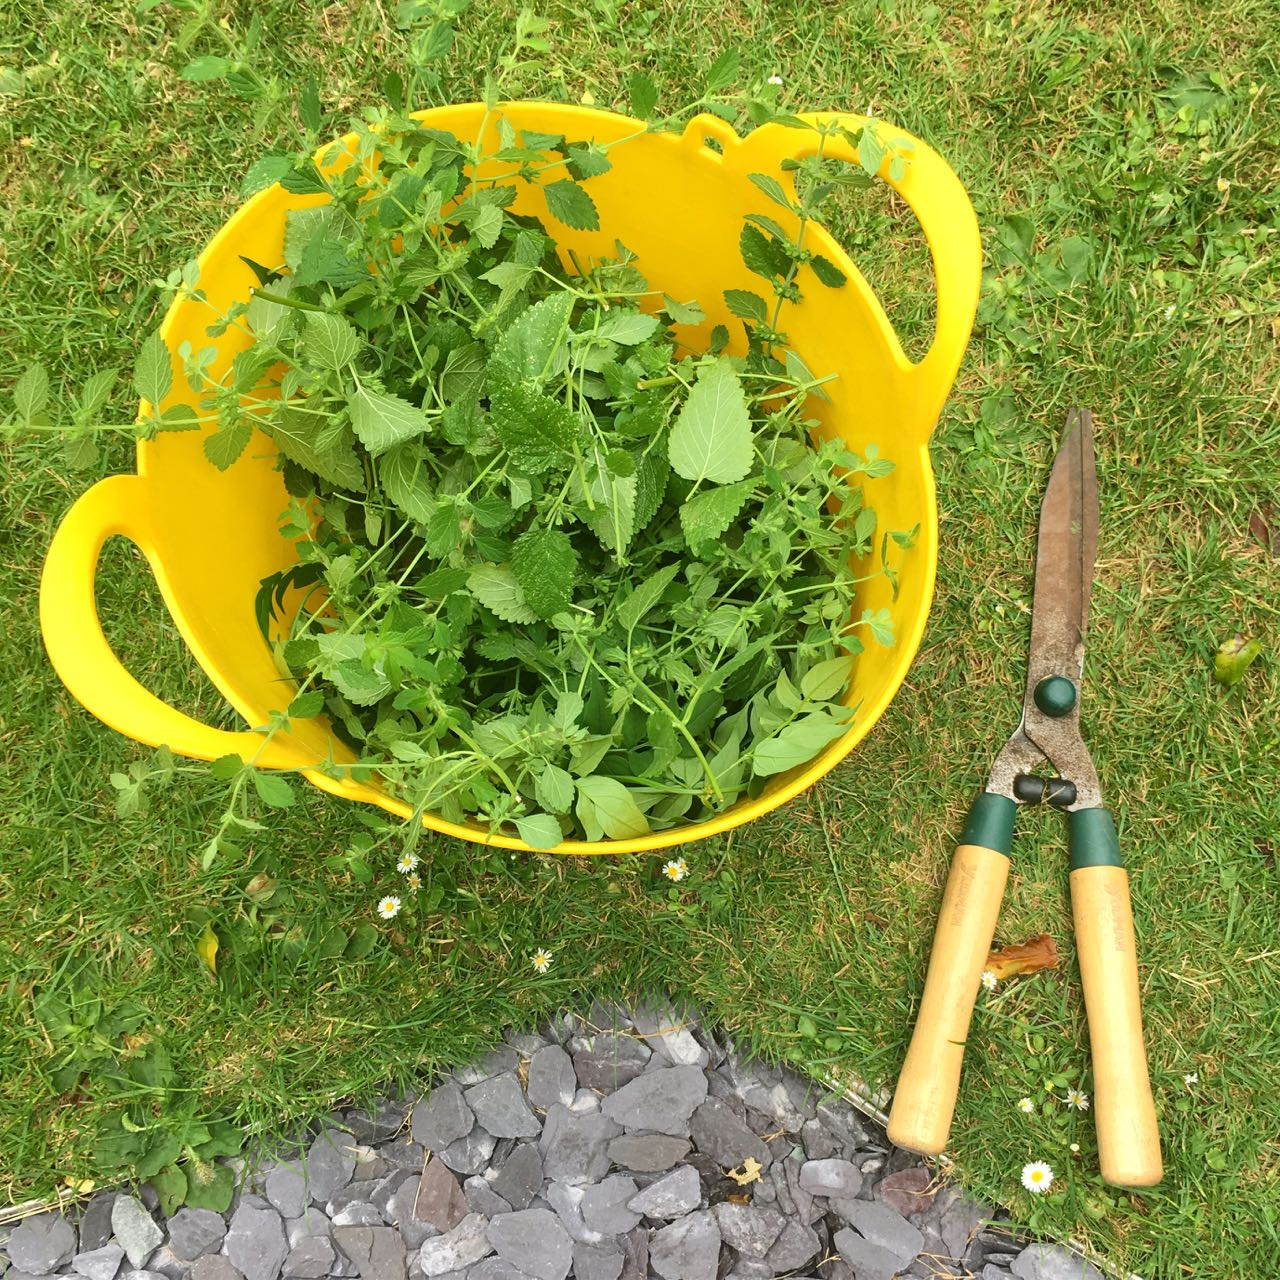 The lemon balm was for the chop